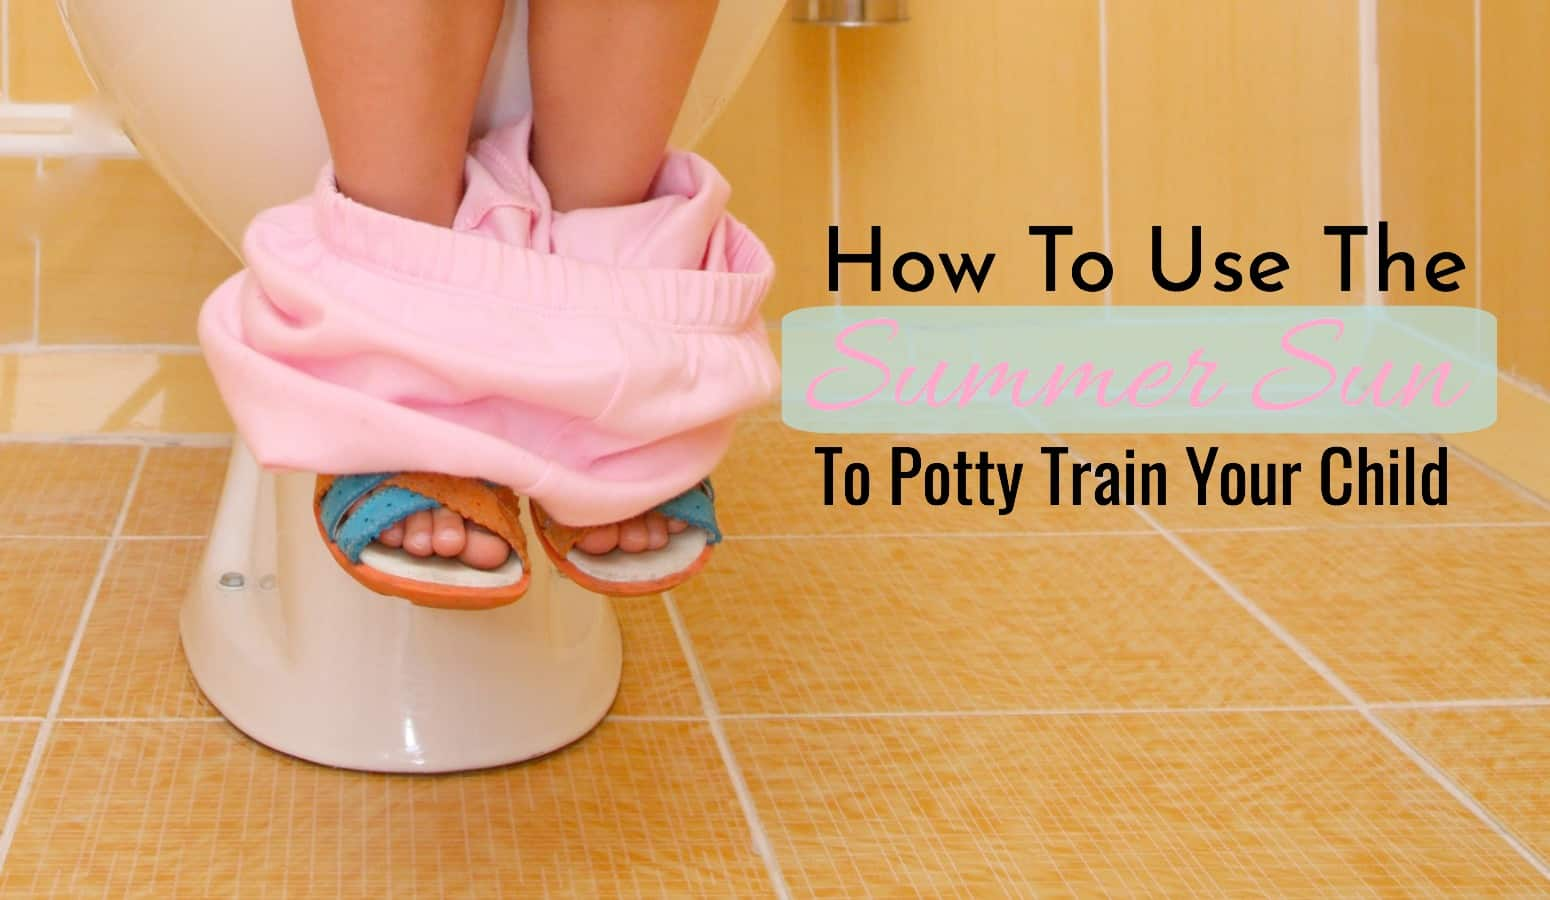 child's legs sitting on the potty while potty training by the age of 2